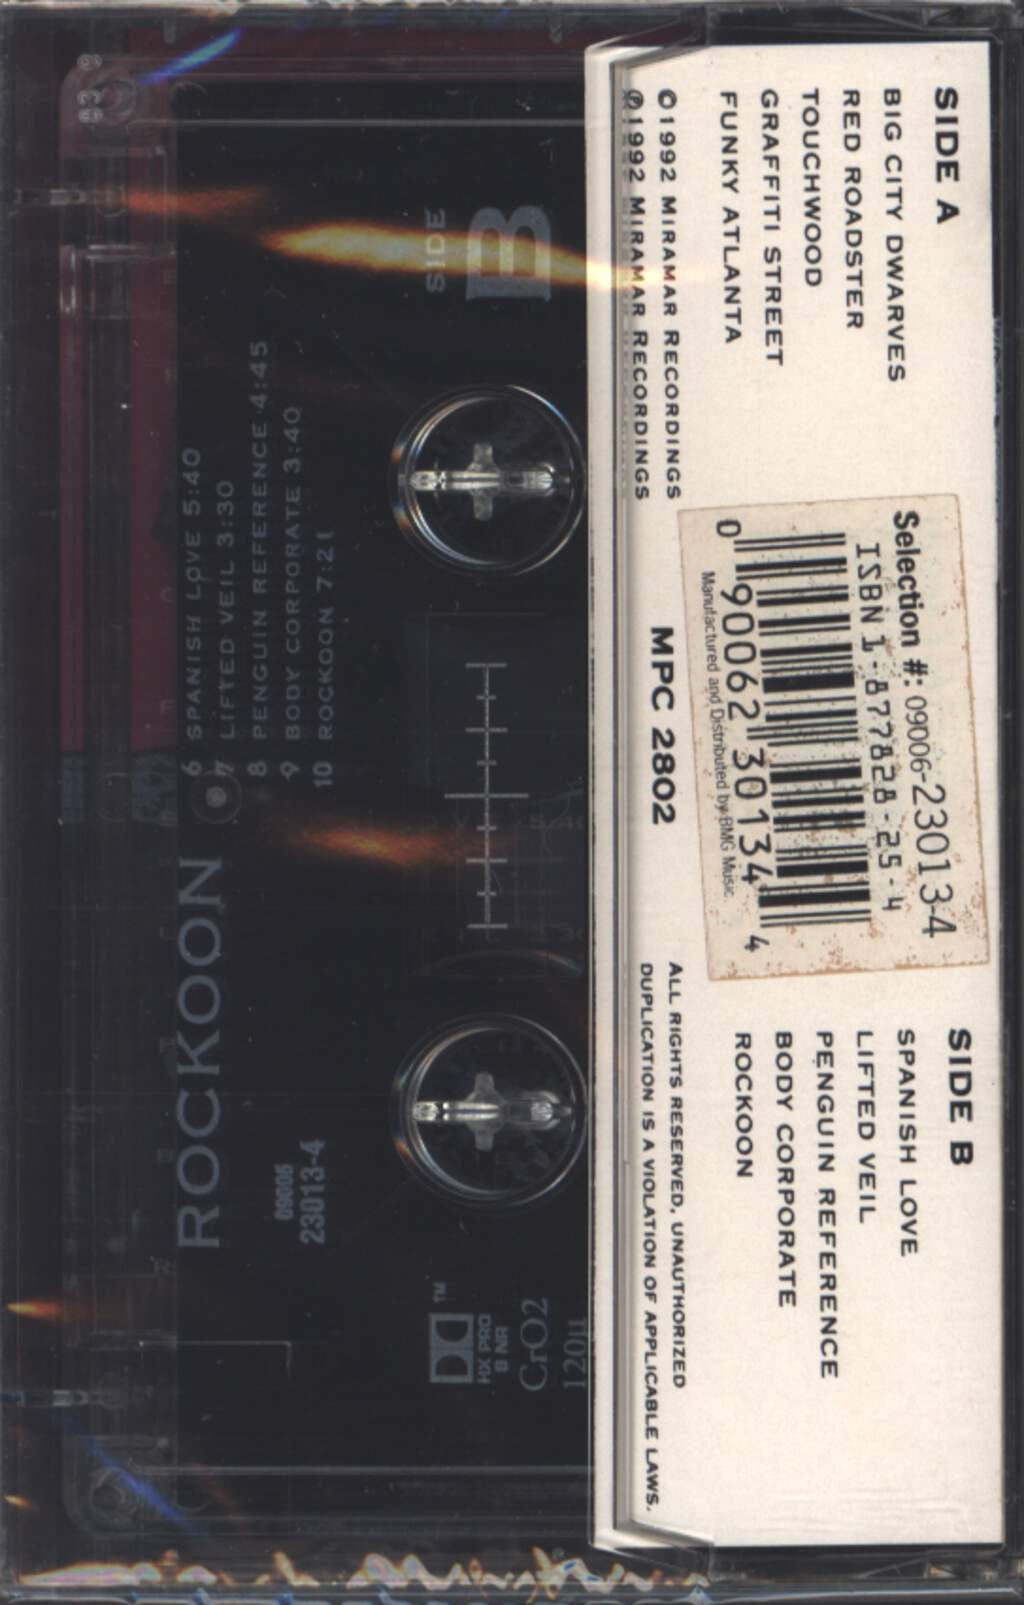 Tangerine Dream: Rockoon, Compact Cassette